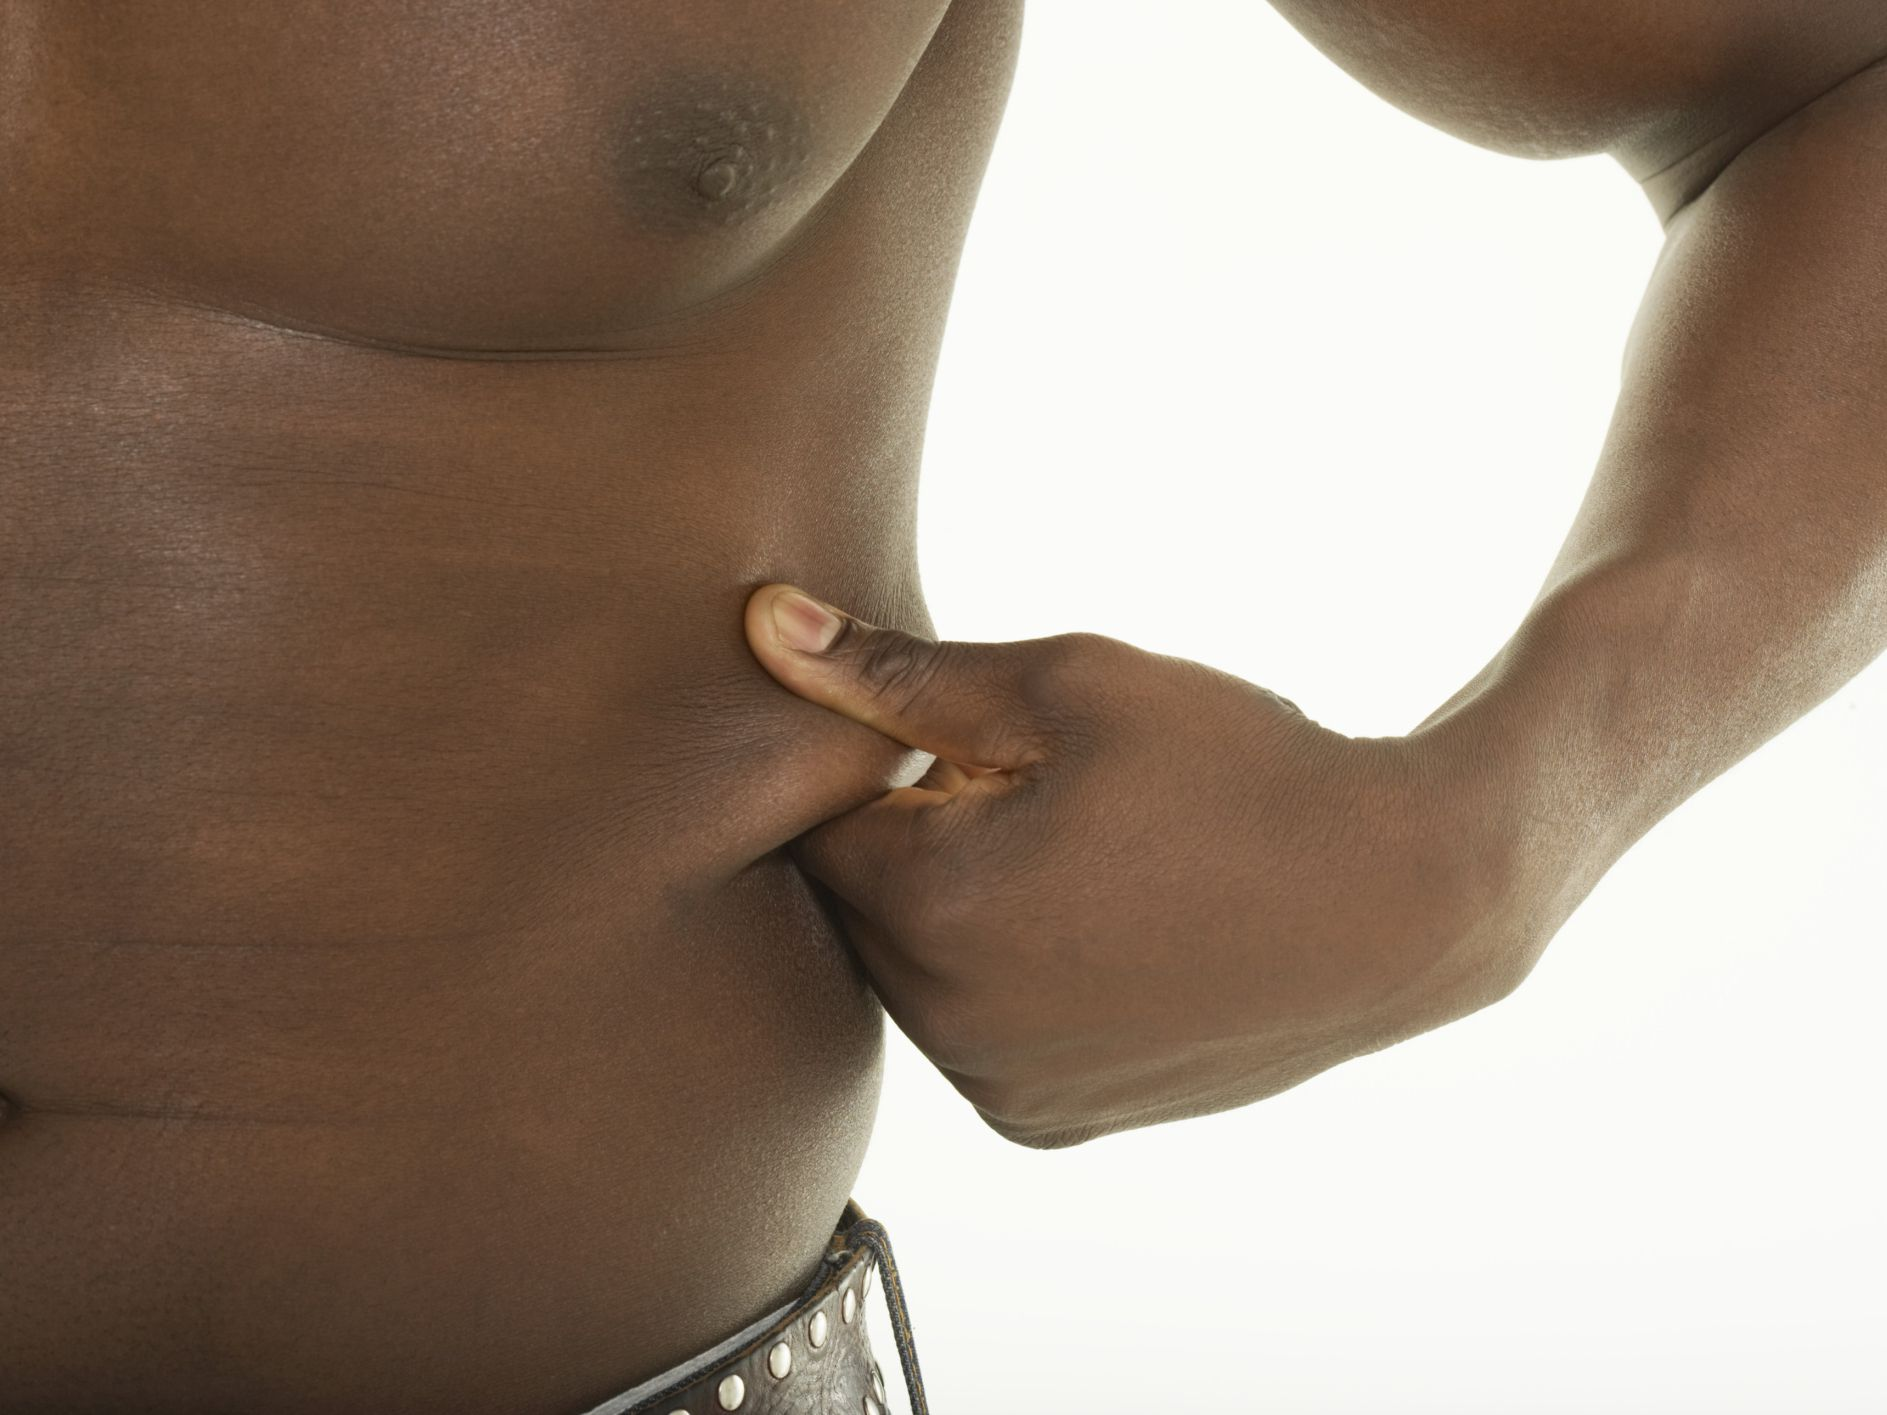 The Best Way To Lose Belly Fat For Men